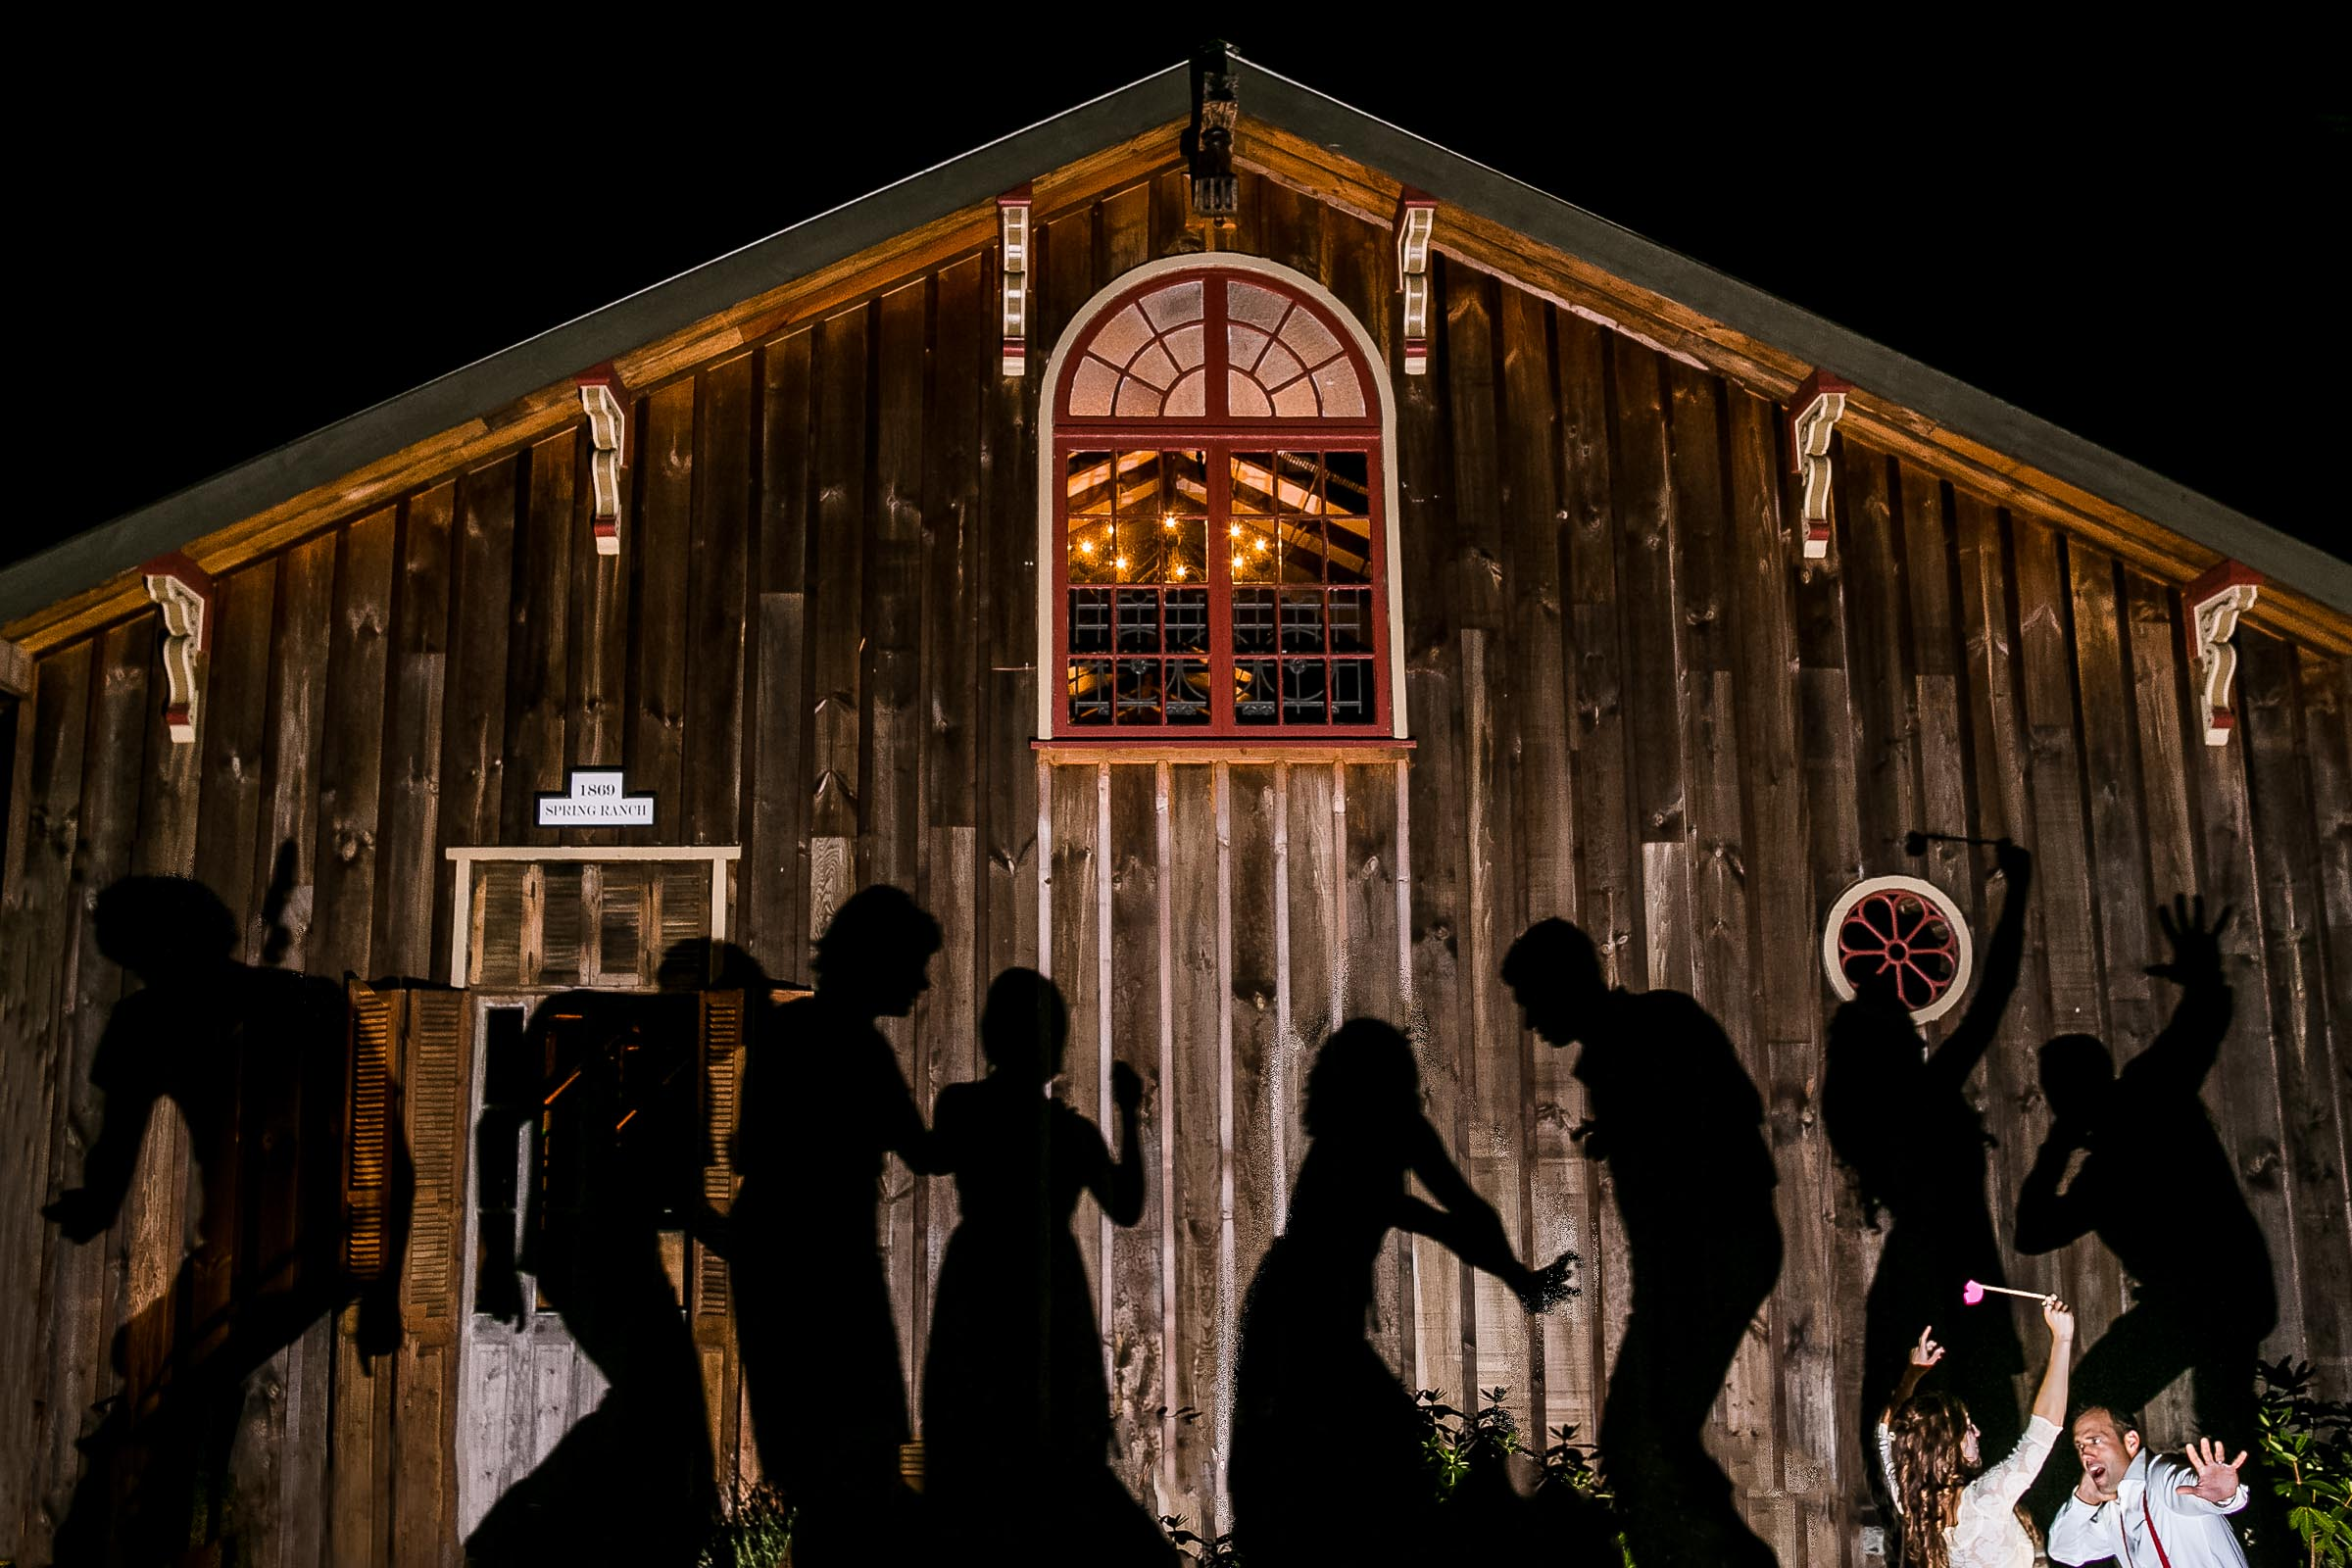 Big silhouette shadows cast on a barn wall during a Mendocino Coast wedding reception at Spring Ranch